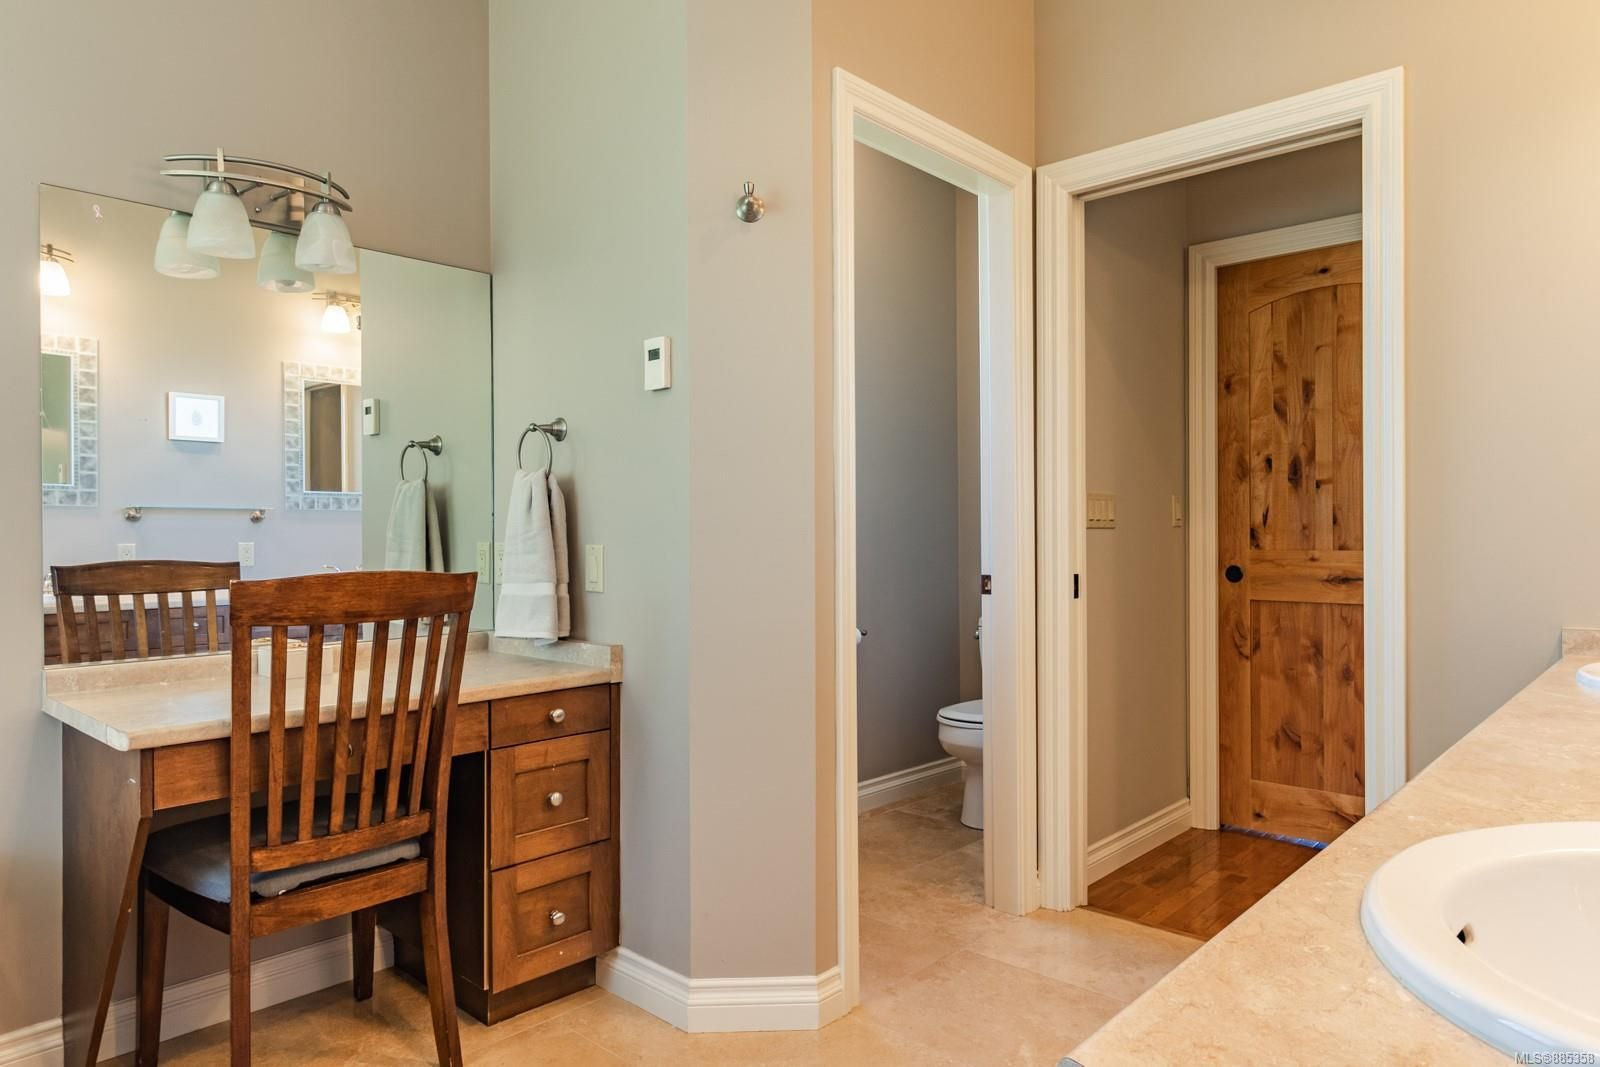 Photo 21: Photos: 2850 Peters Rd in : PQ Qualicum Beach House for sale (Parksville/Qualicum)  : MLS®# 885358